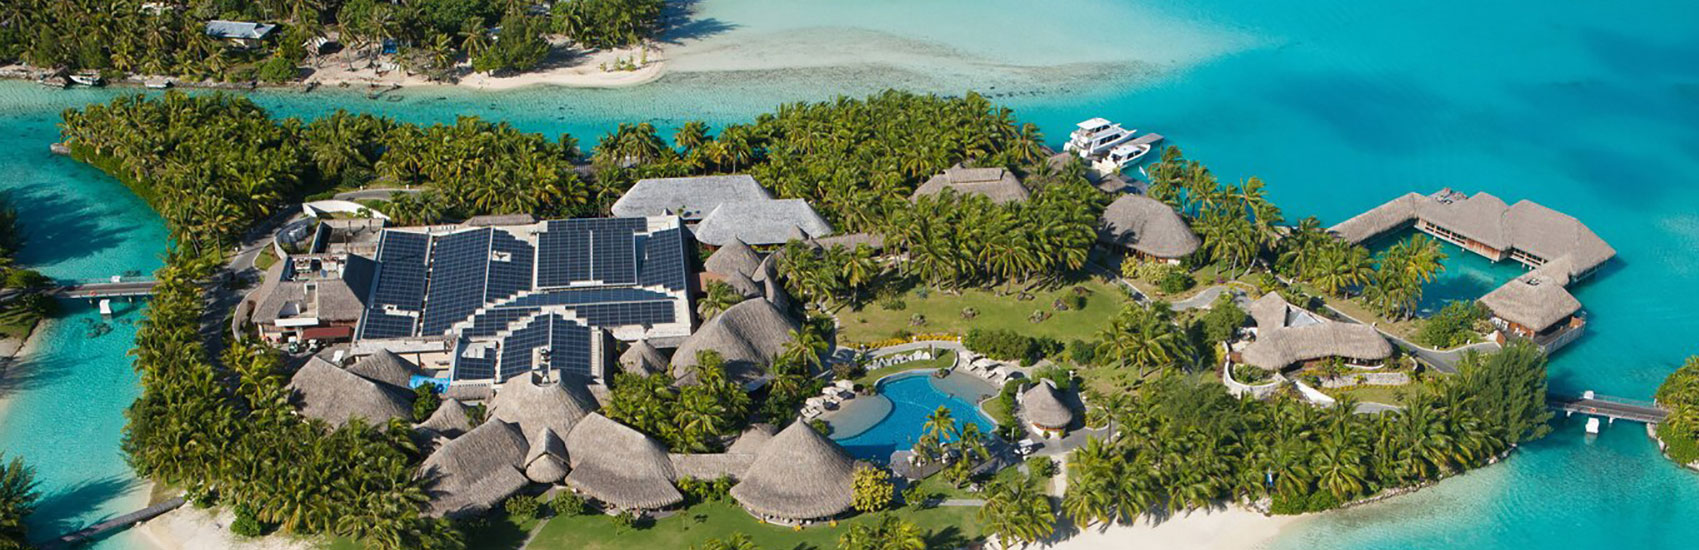 The St. Regis Bora Bora Resort 1